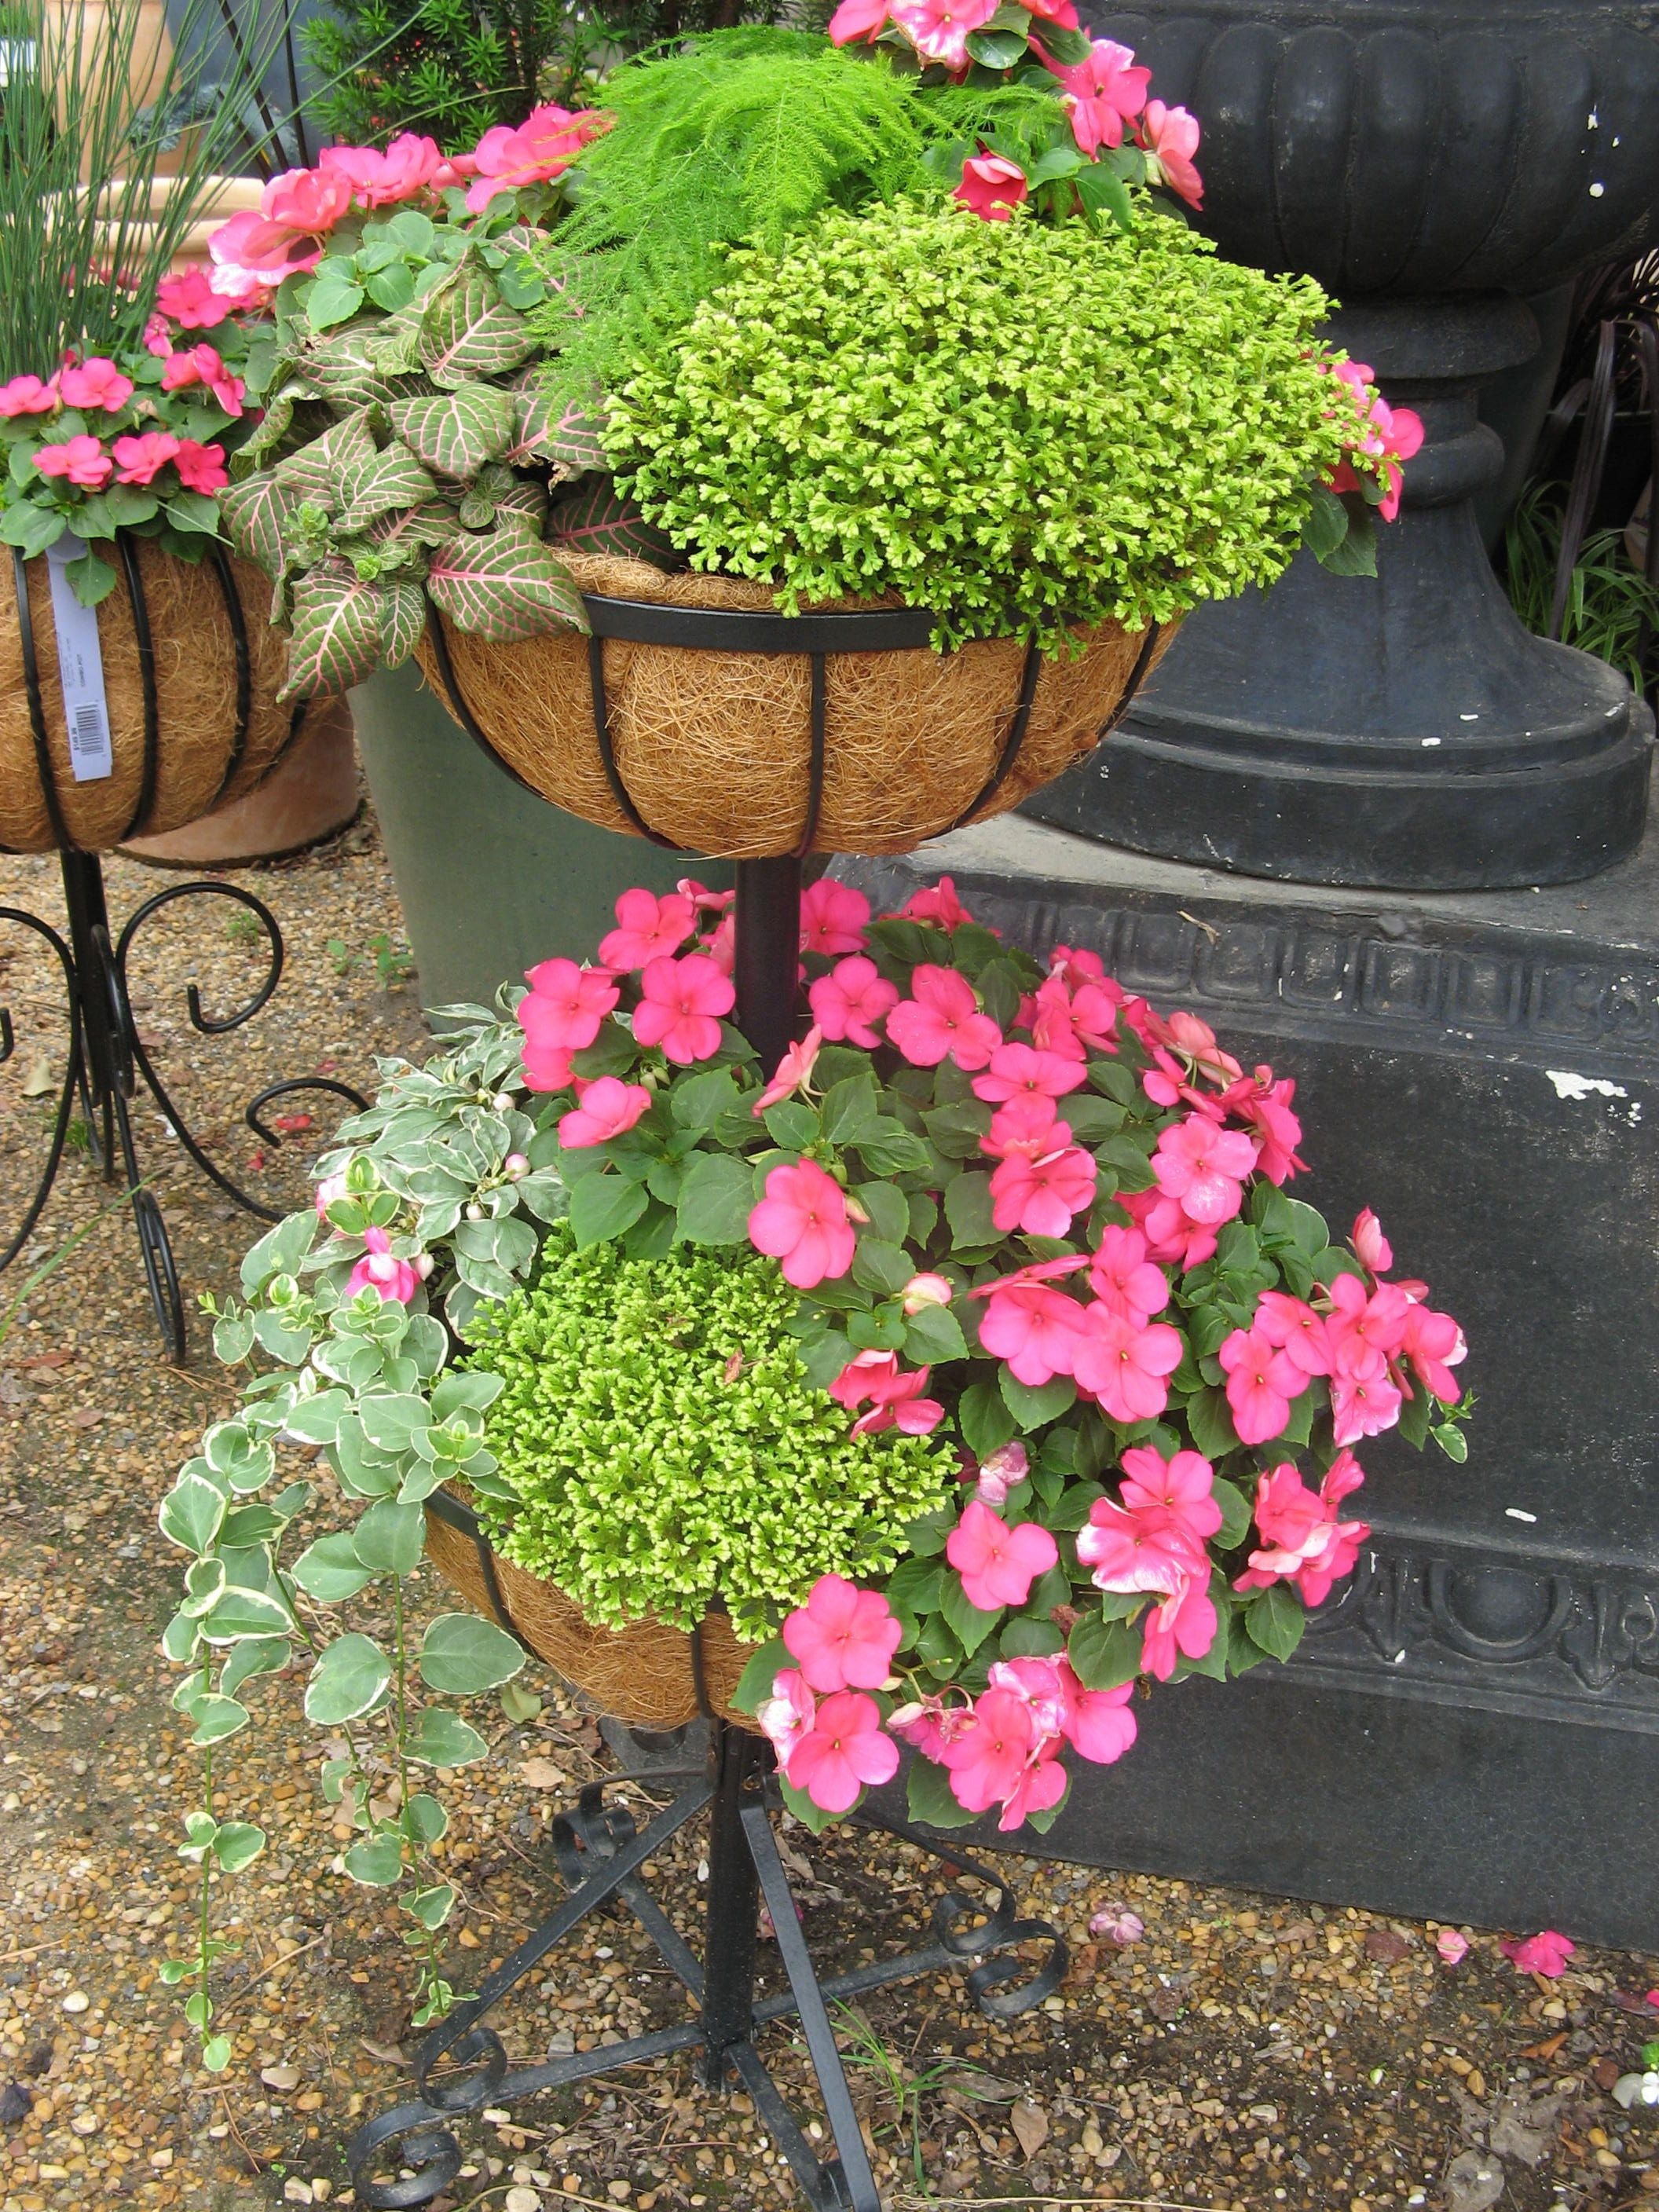 Shade Combo Planters With Impatiens Moss Asparagus Fern Fittonia And Variegated Vina Major Container Flowers Container Plants Asparagus Fern